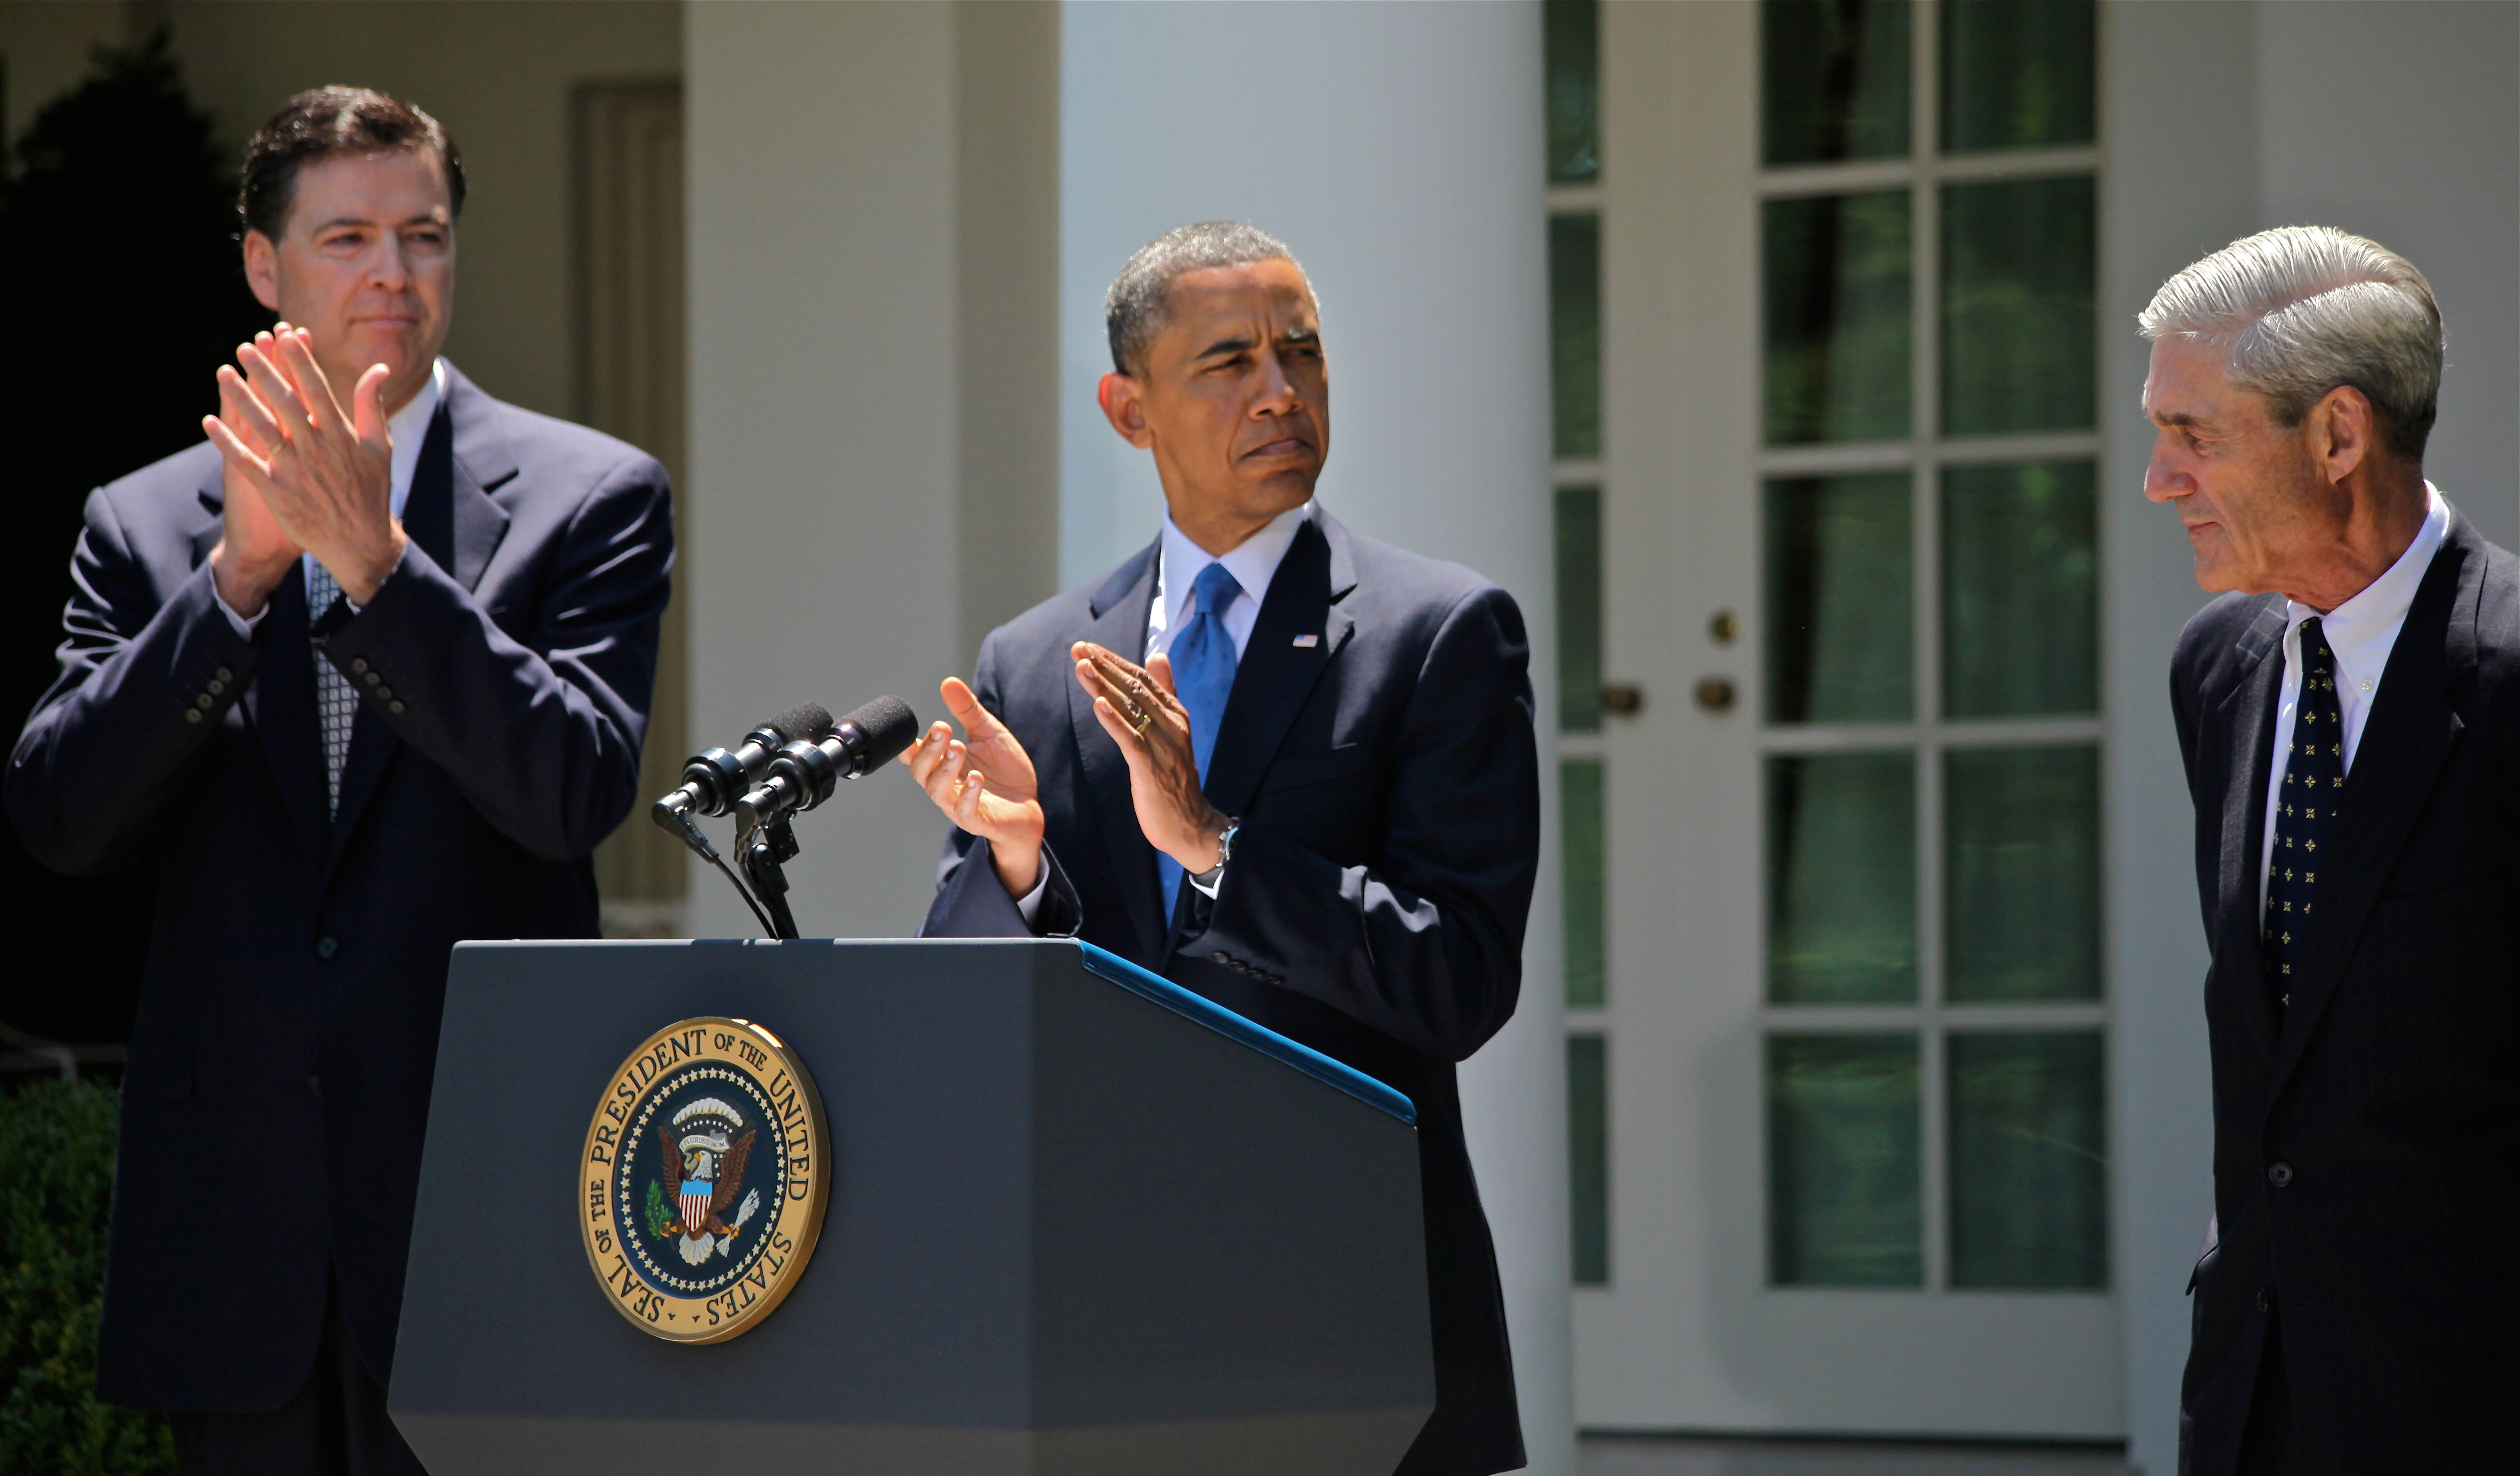 Comey (left), alongside President Barack Obama (center) and outgoing FBI Director Robert Mueller (right) at Comey's nomination to become the seventh Director of the FBI, June 21, 2013